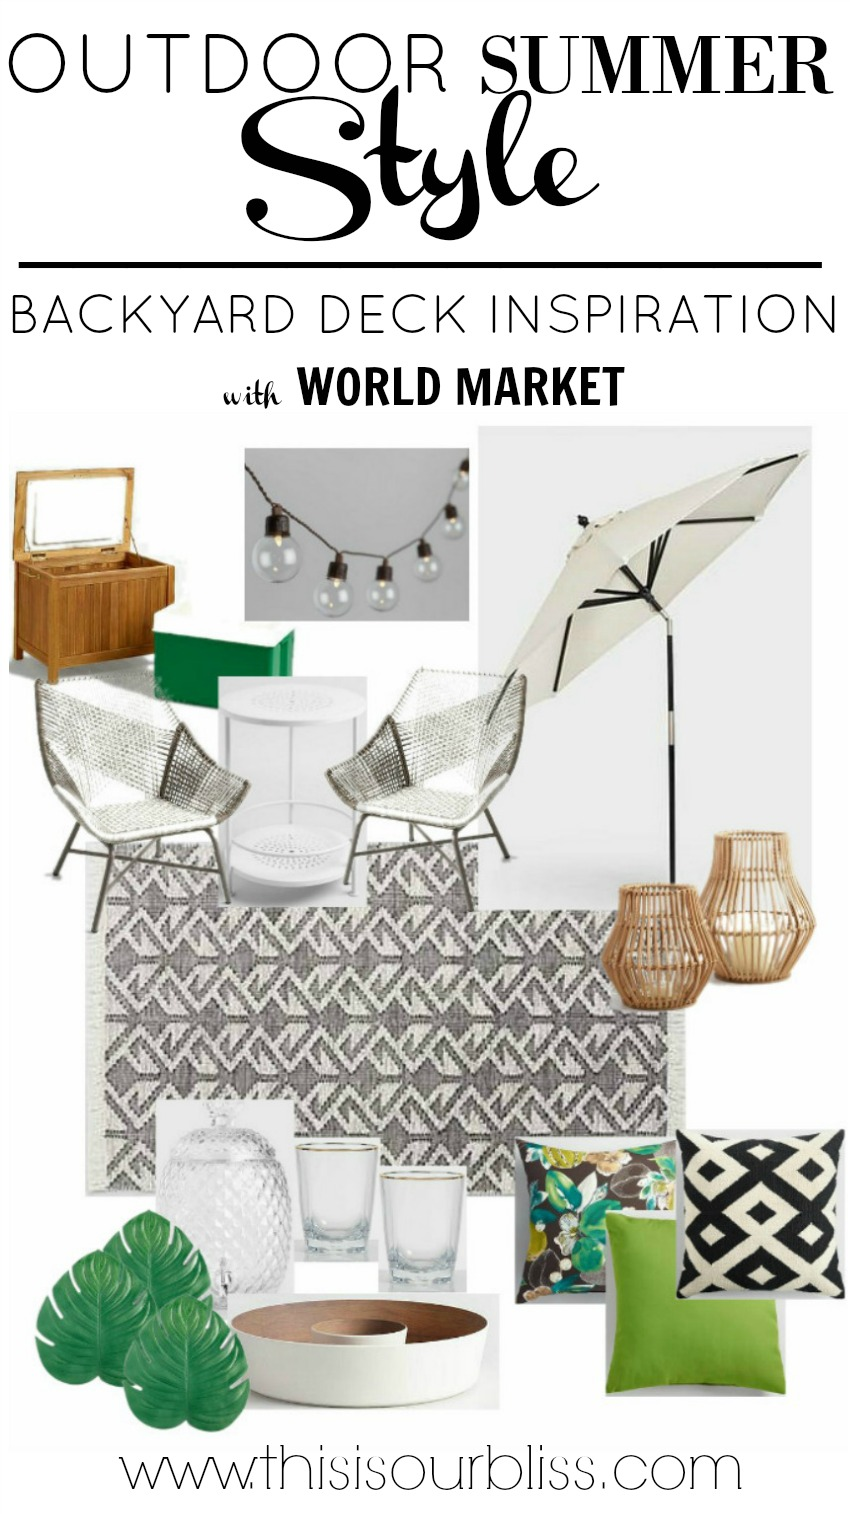 Outdoor Inspiration | Backyard Deck Makeover Ideas from World Market | www,thisisourbliss.com